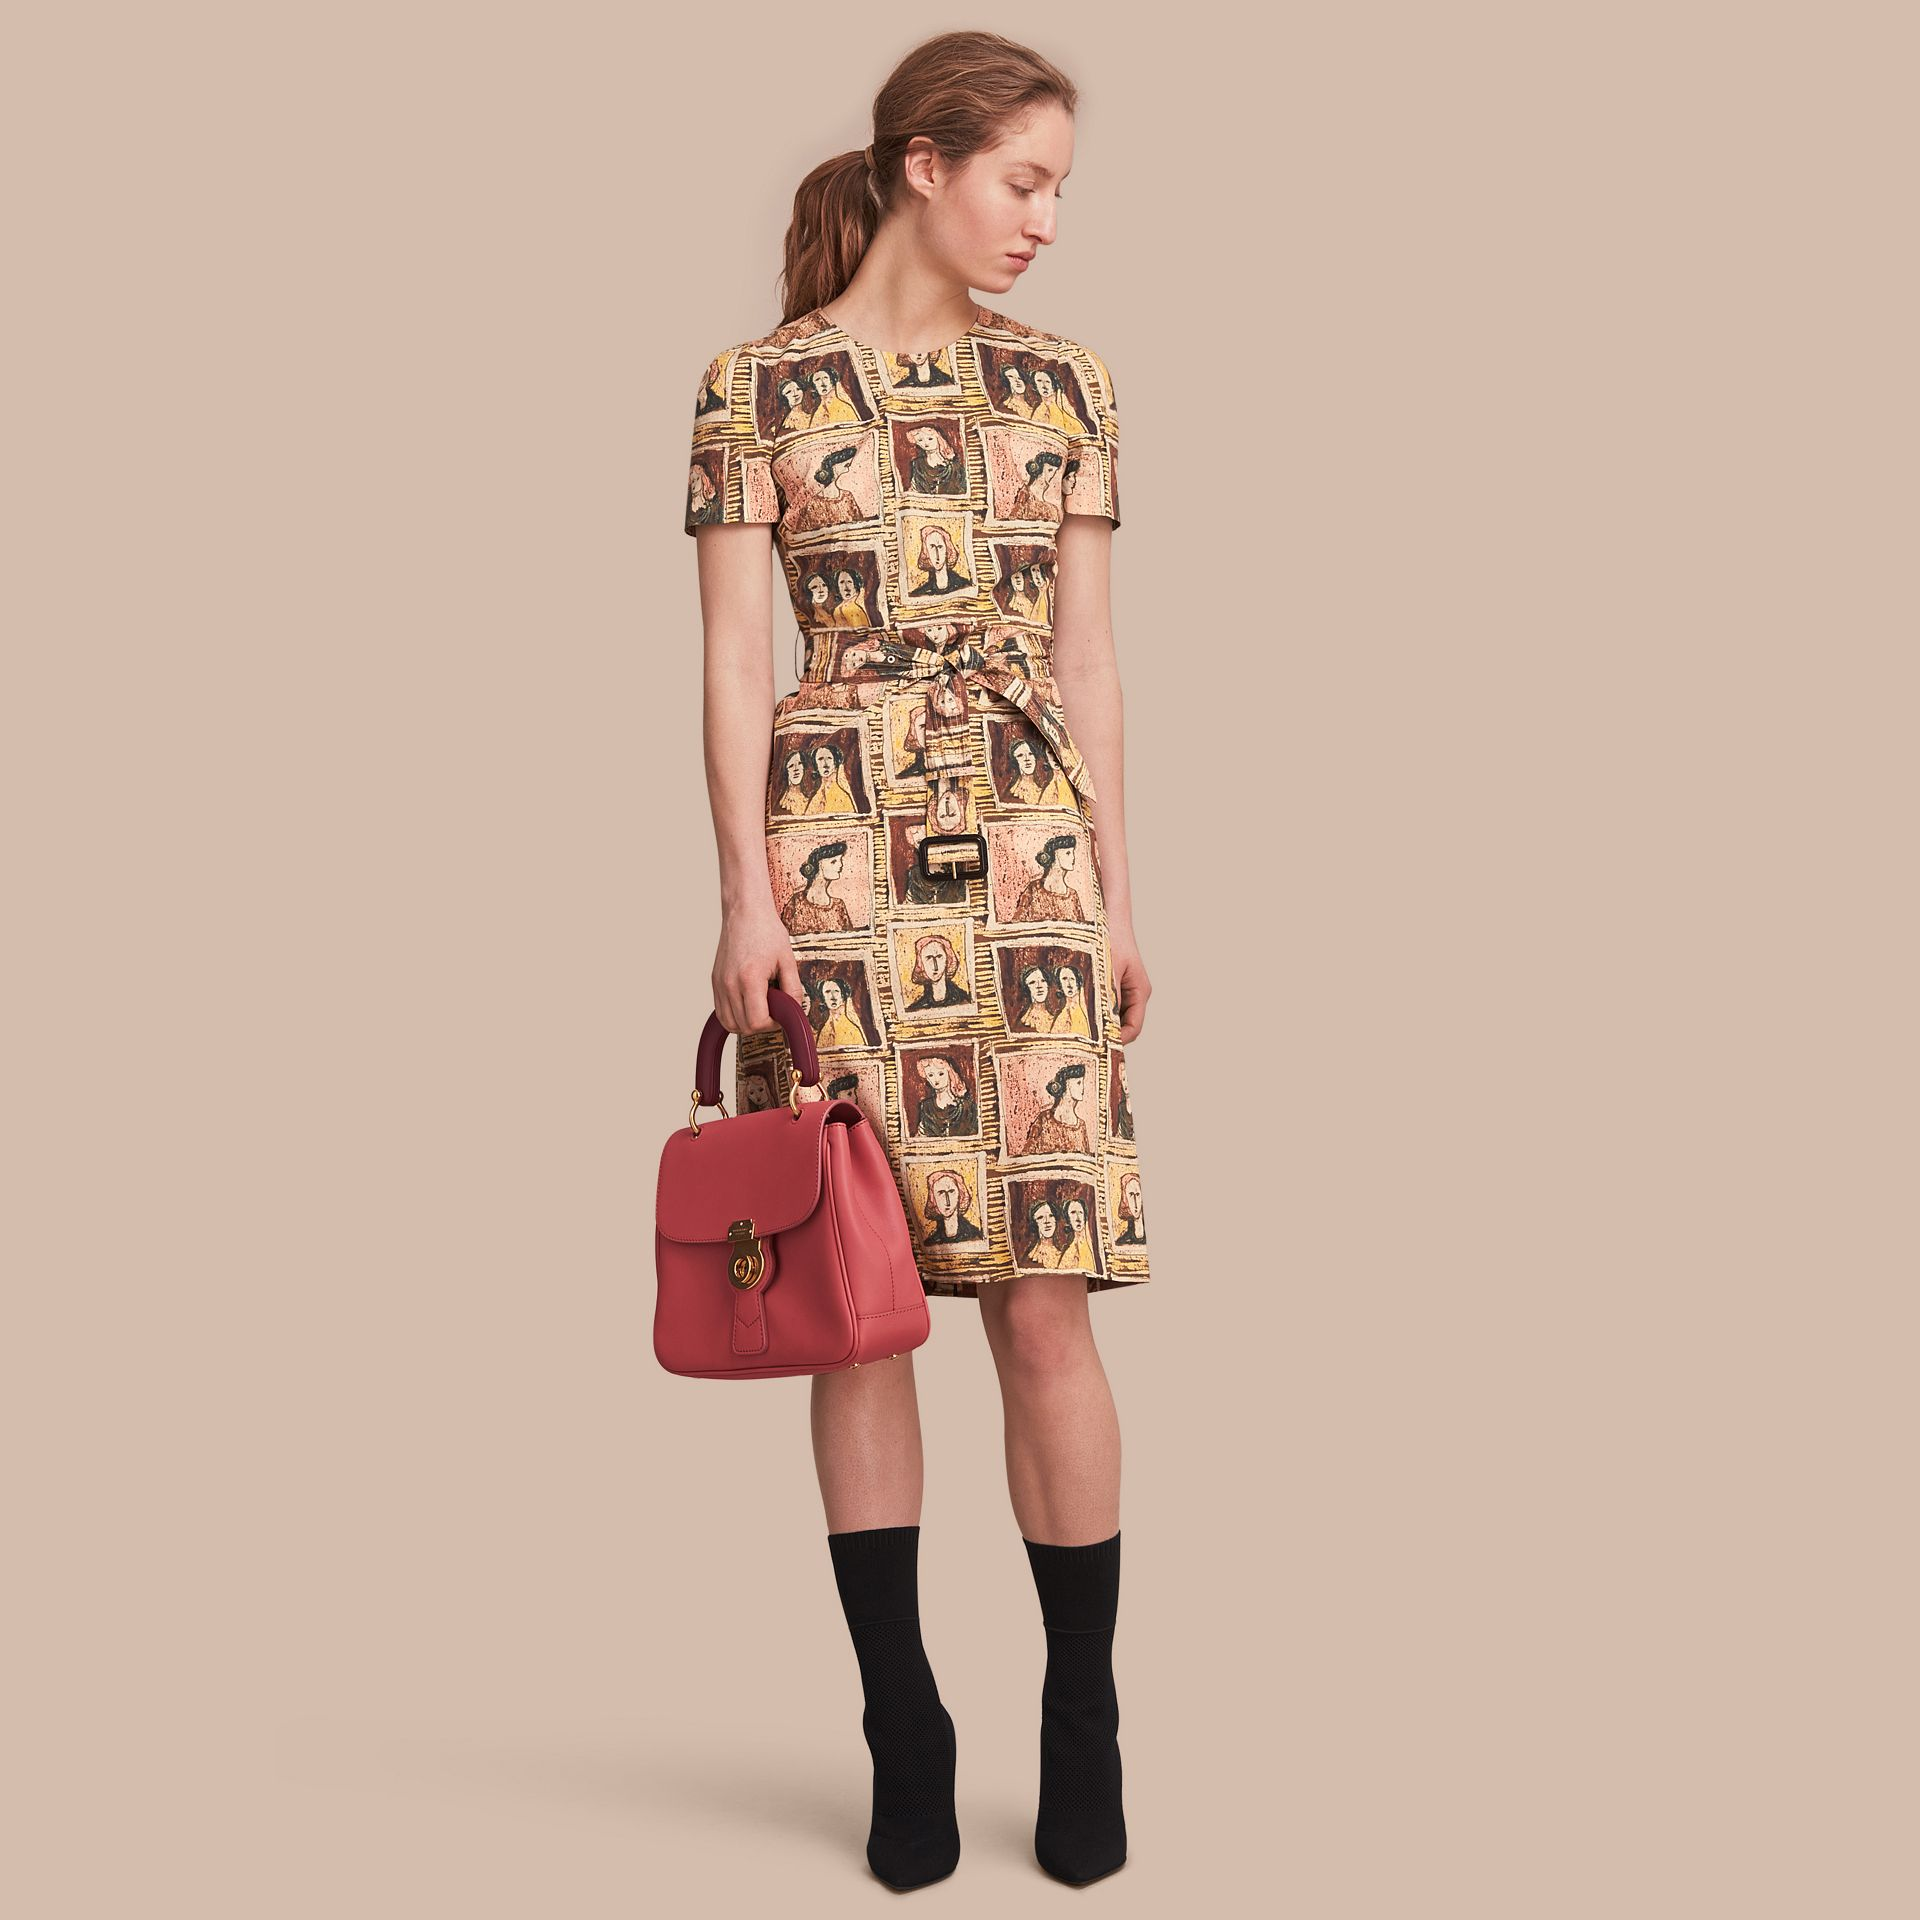 Framed Heads Print Cotton Shift Dress in Umber Brown - Women | Burberry Hong Kong - gallery image 1